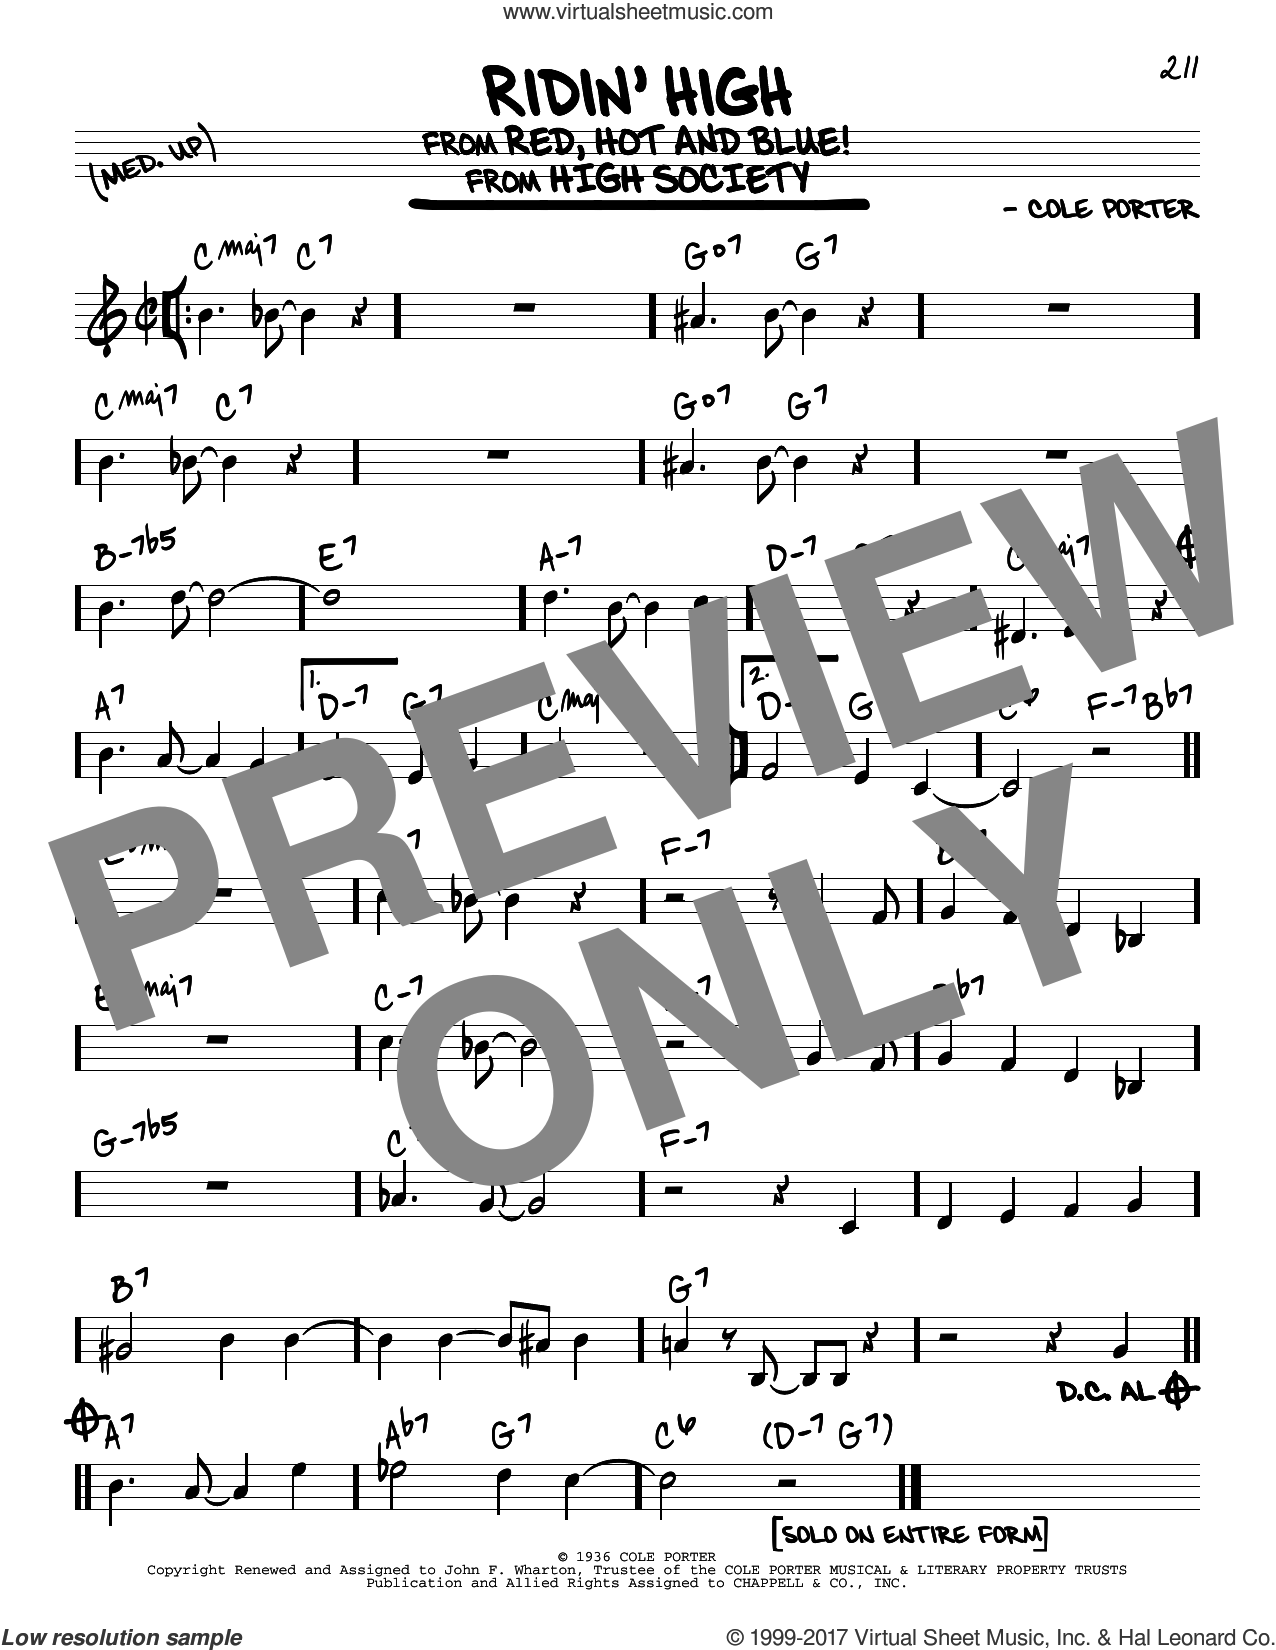 Ridin' High sheet music for voice and other instruments (real book) by Cole Porter, intermediate skill level